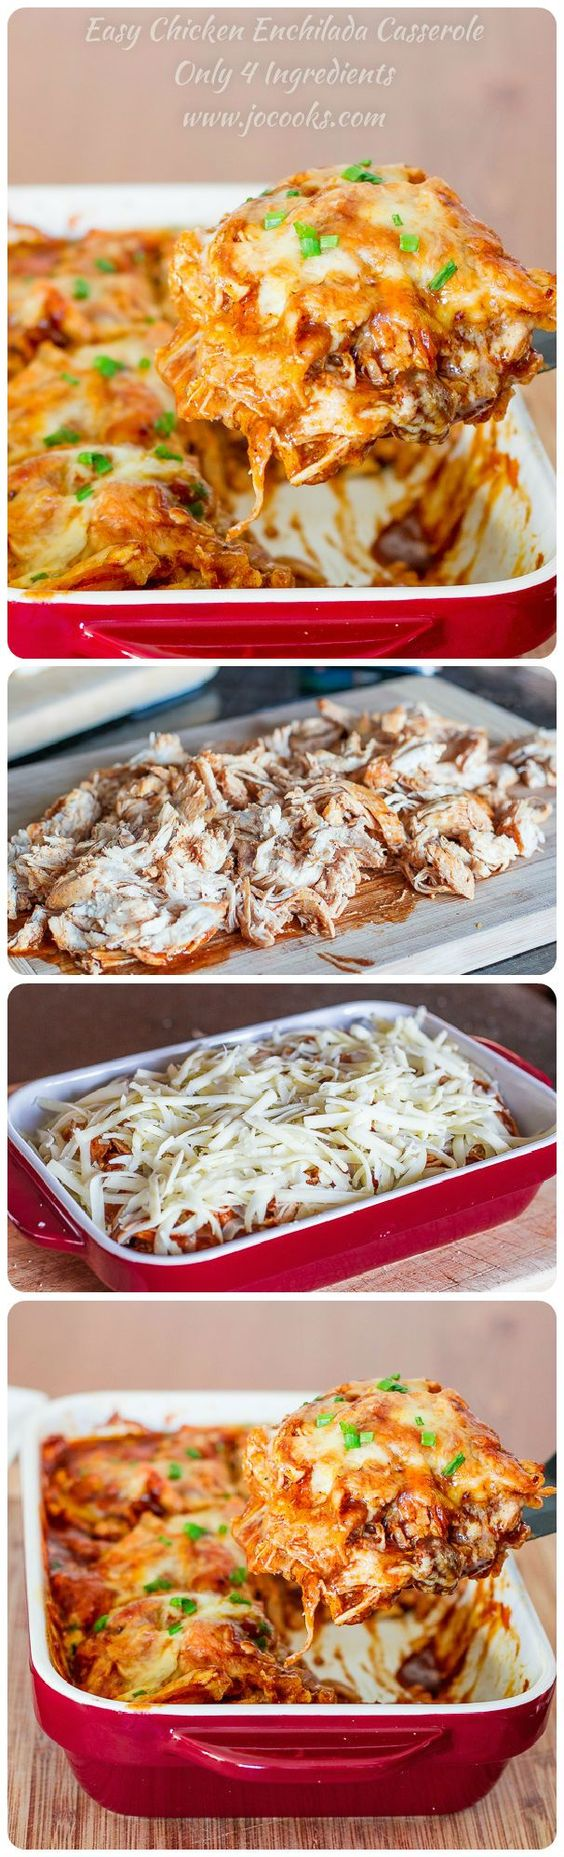 "Easy Chicken Enchilada Casserole - ""4 ingredients is all it takes to make this popular Mexican dish. It's cheesy, it's spicy, it's sinfully delicious."" Easy Chicken Enchilada Casserole 